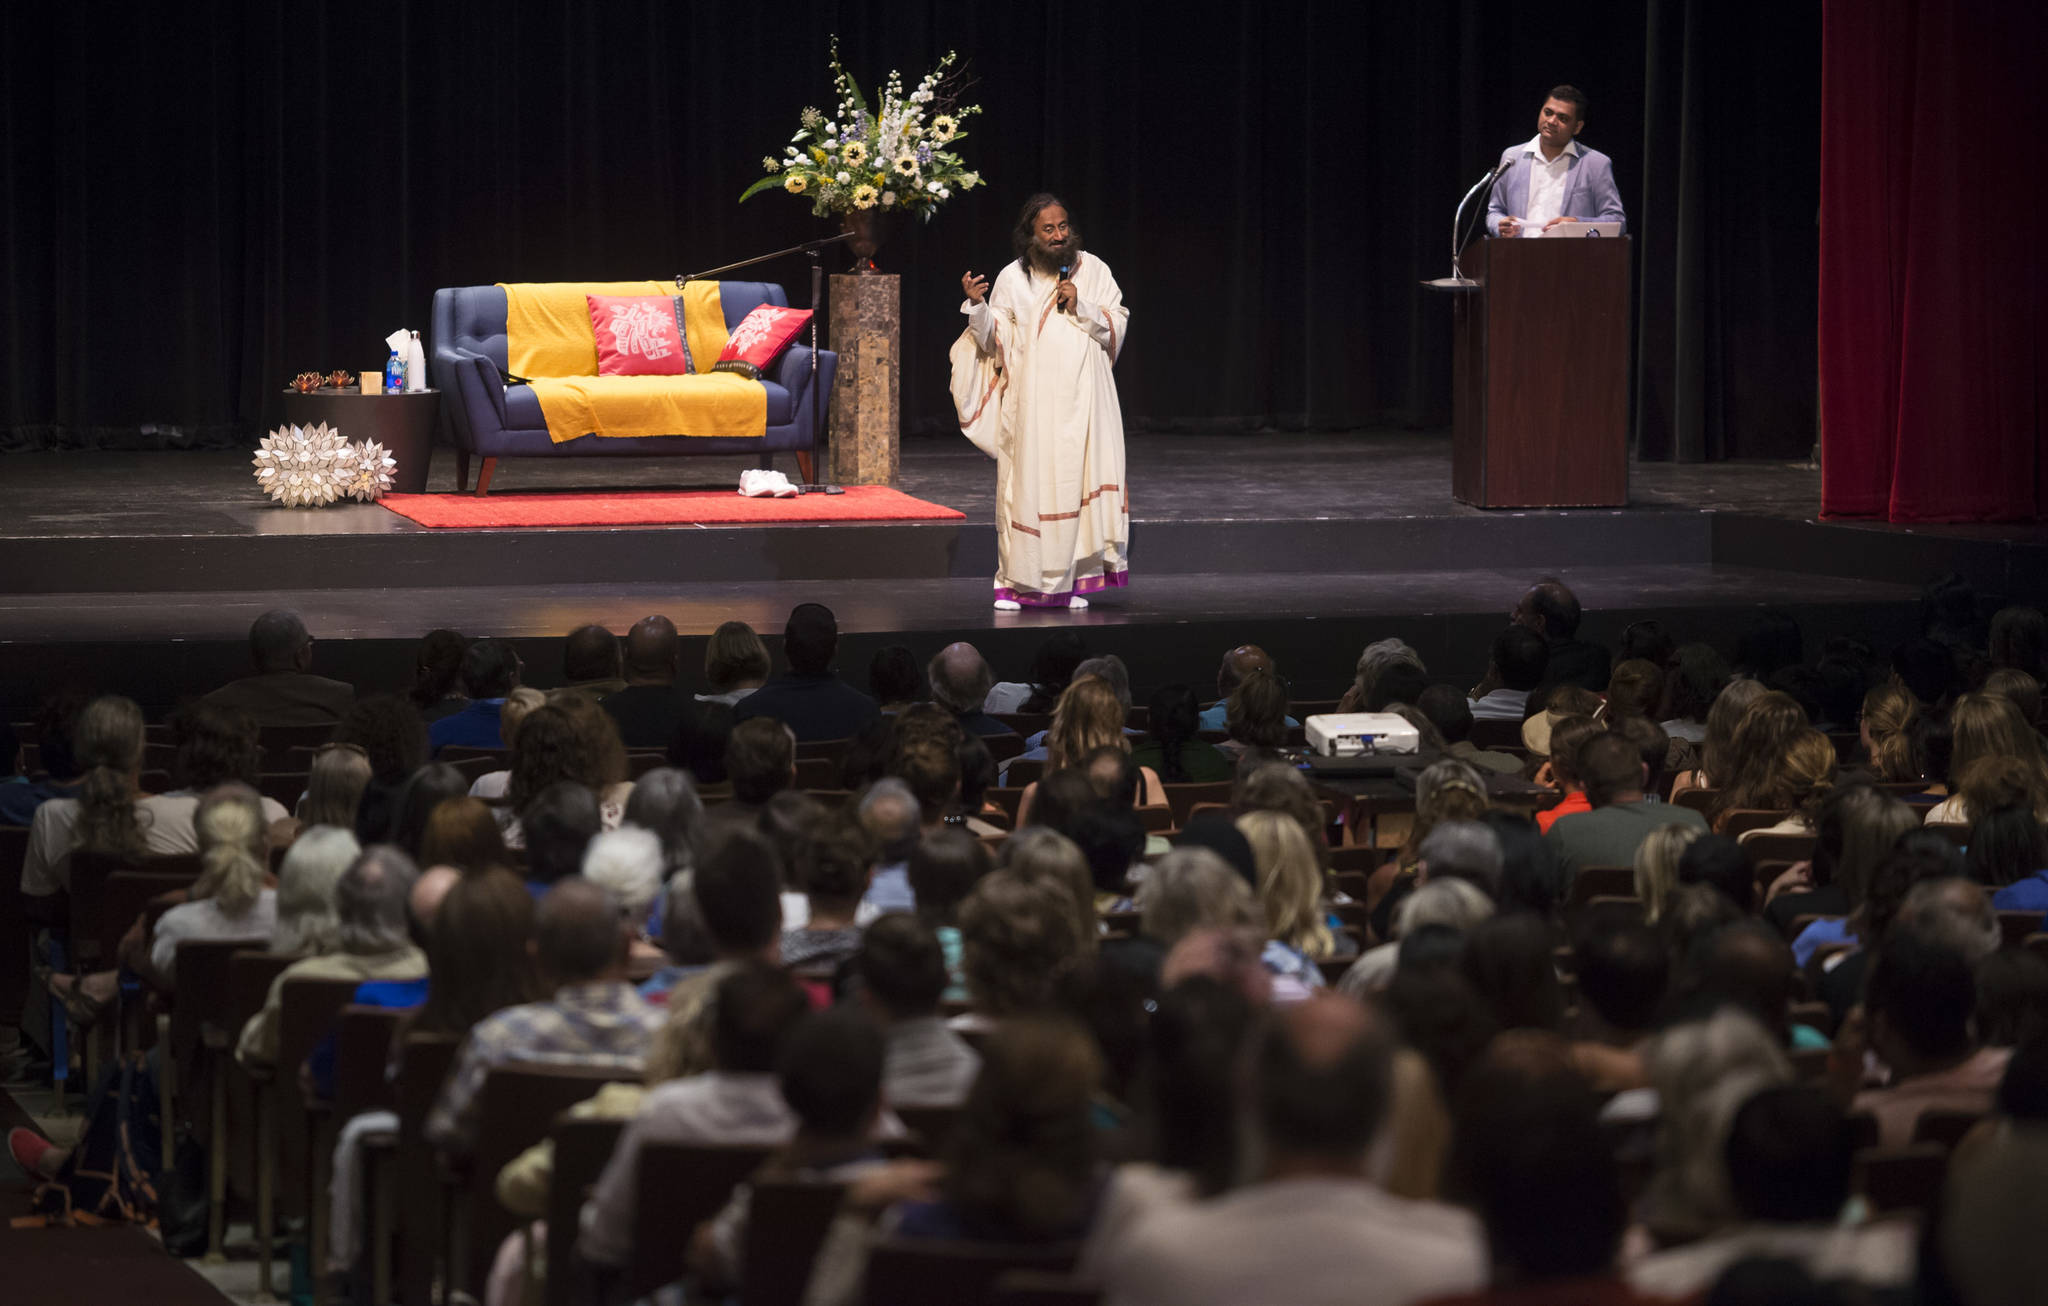 Spiritual leader Sri Sri Ravi Shankar of The Art of Living Foundation leads a group meditation at the Juneau-Douglas High School auditorium on Tuesday, July 31, 2018, as part of his West Coast Tour that also includes San Francisco and Seattle. (Michael Penn | Juneau Empire)